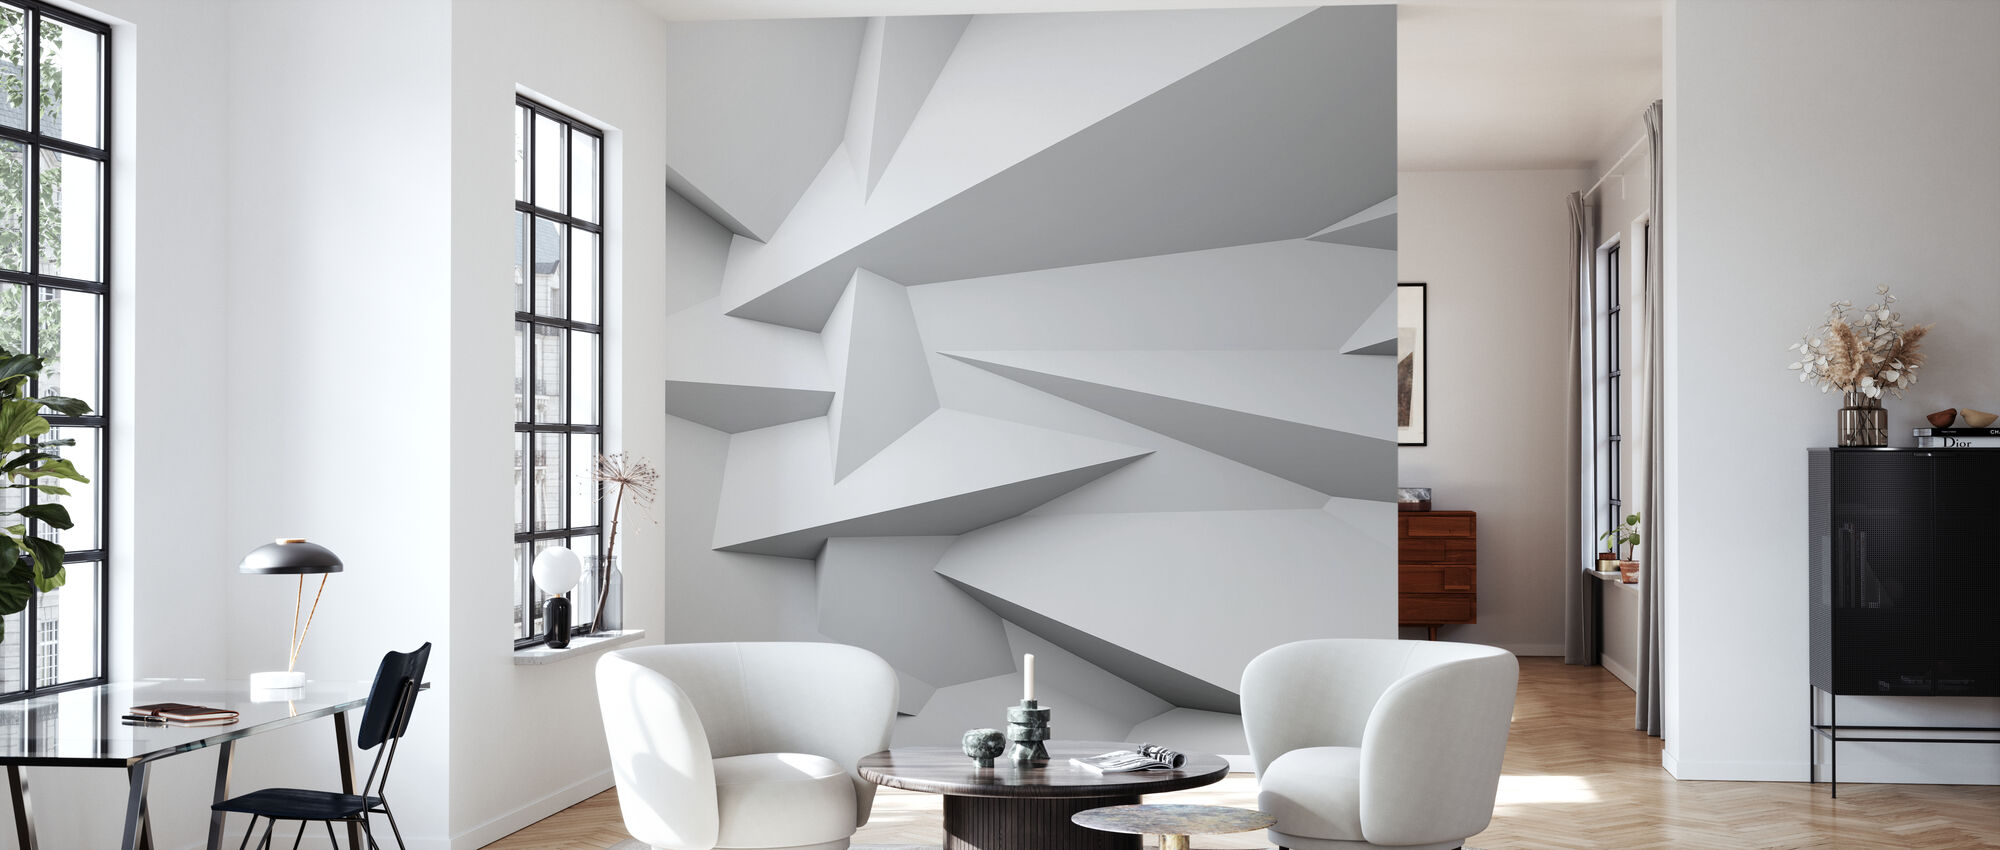 Faceted 3D Wall - Wallpaper - Living Room